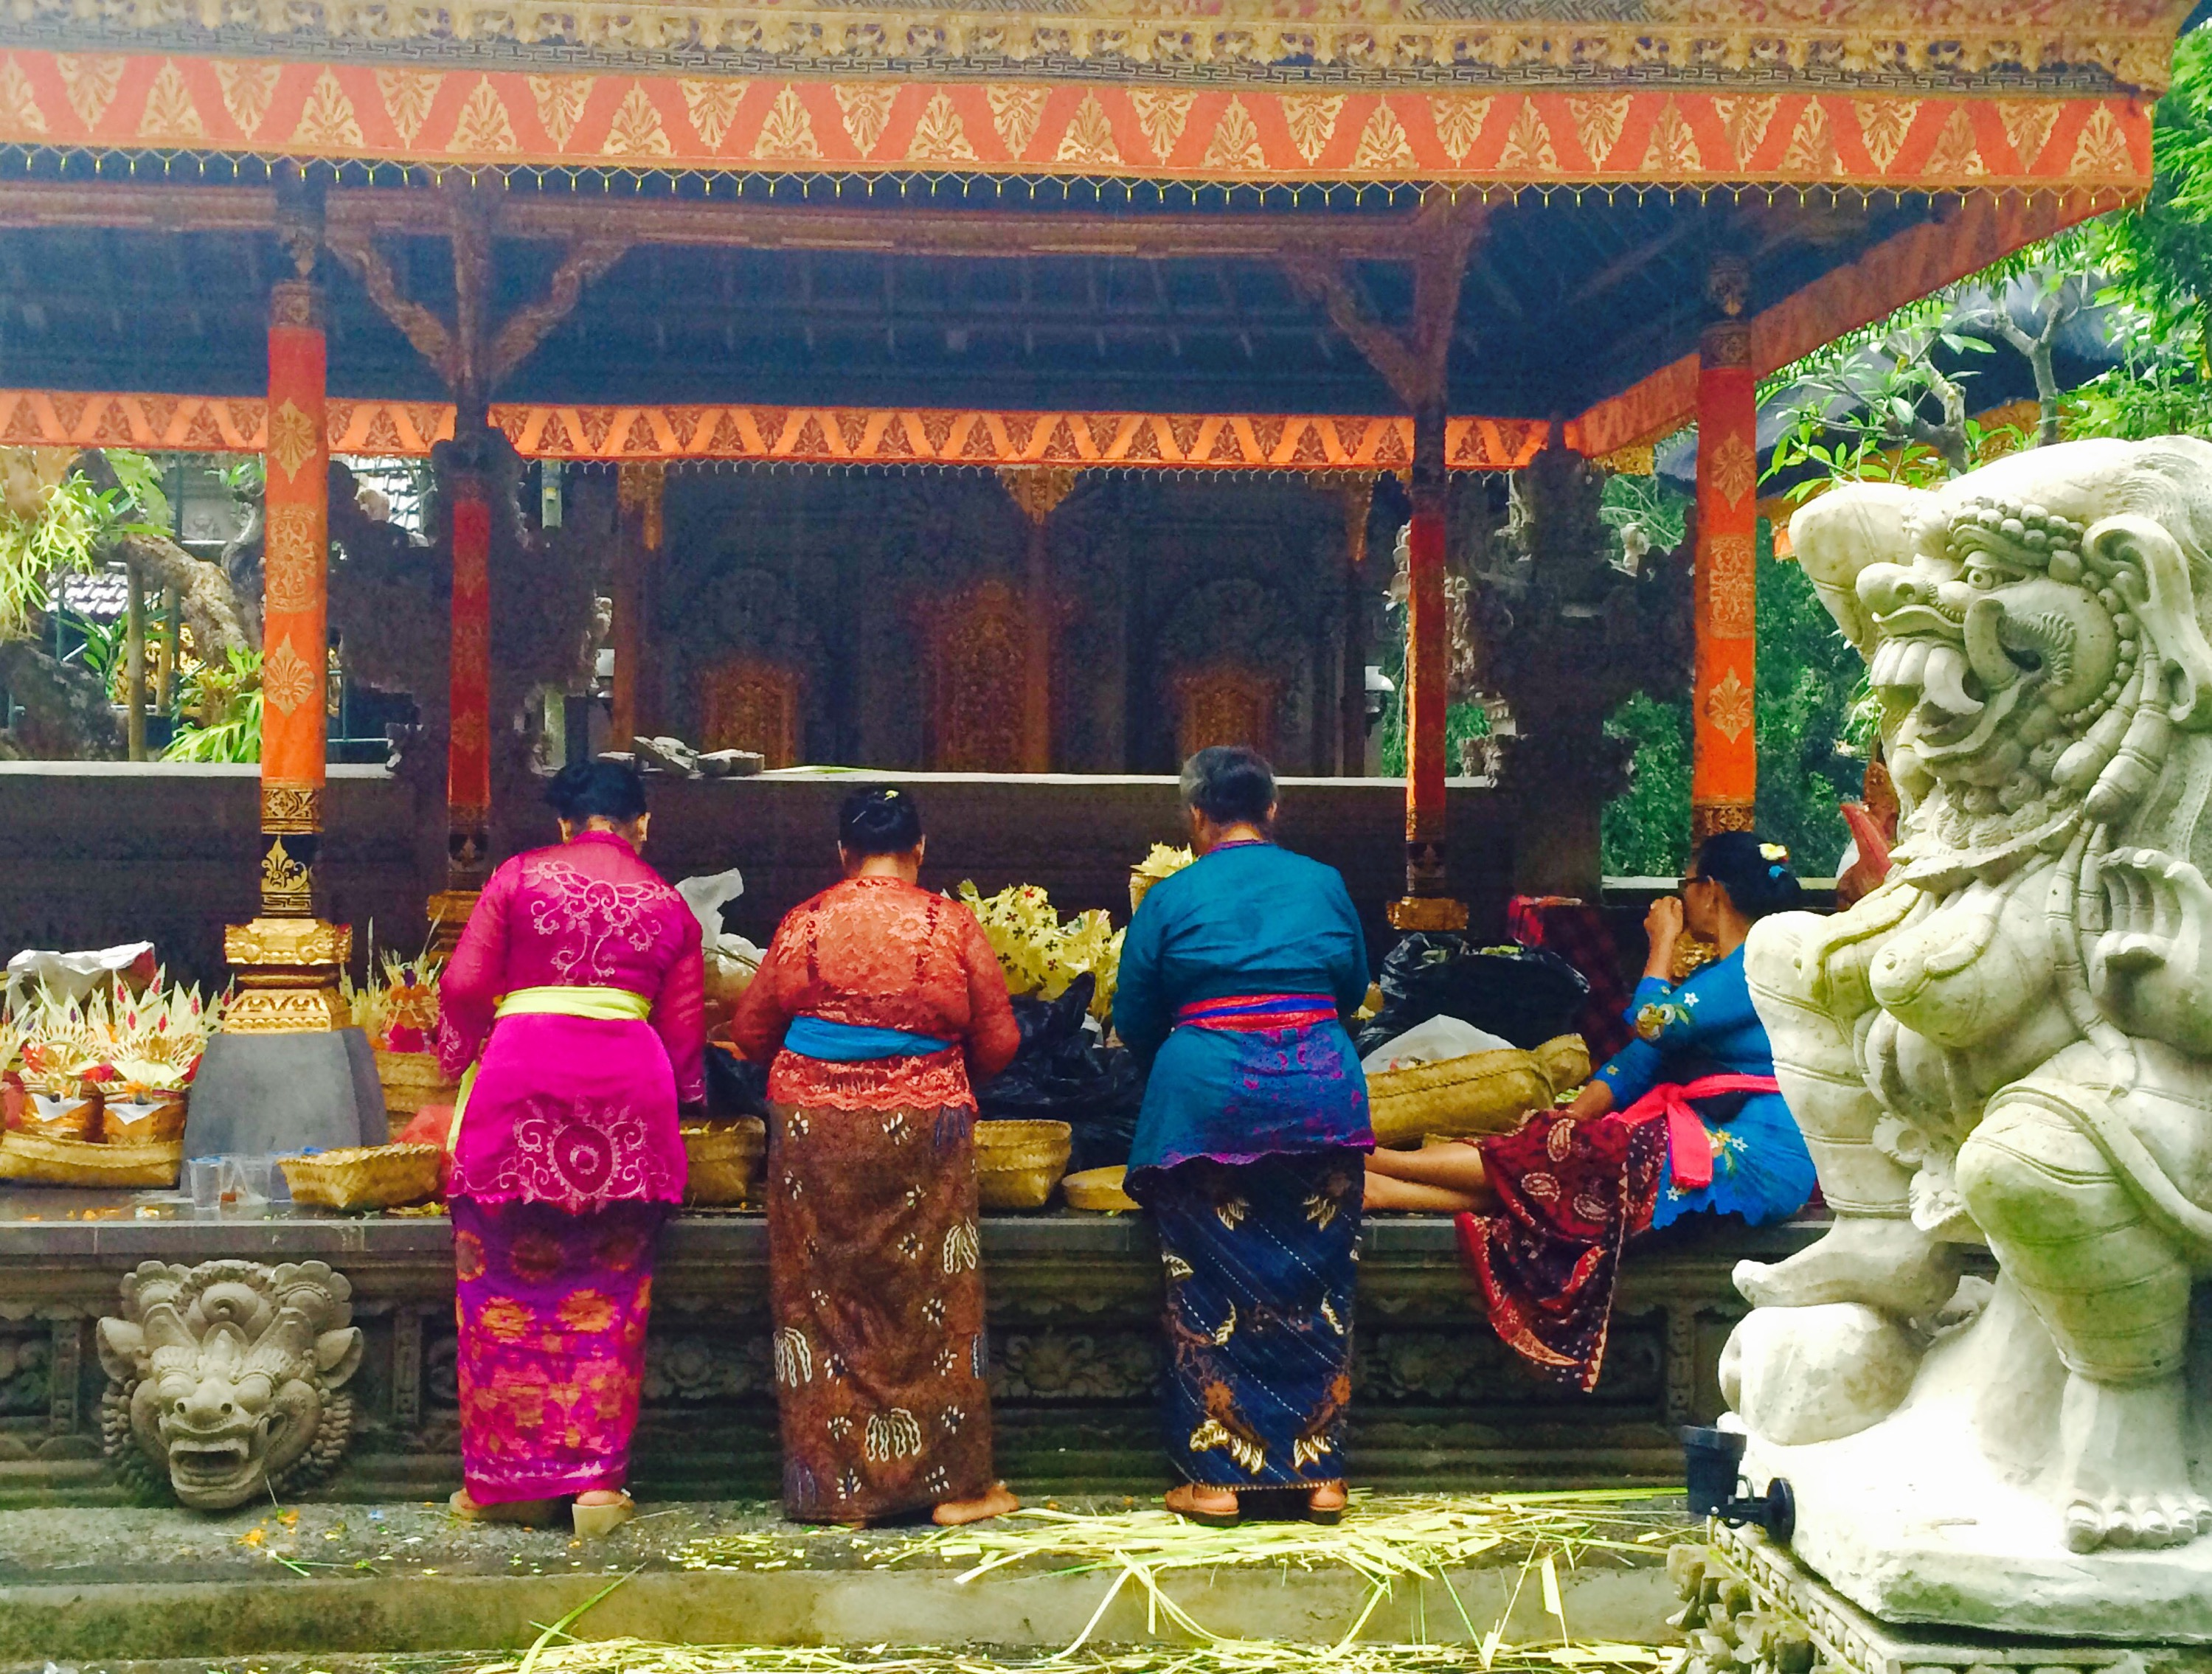 Balinese women at the temple - Ubud Bali